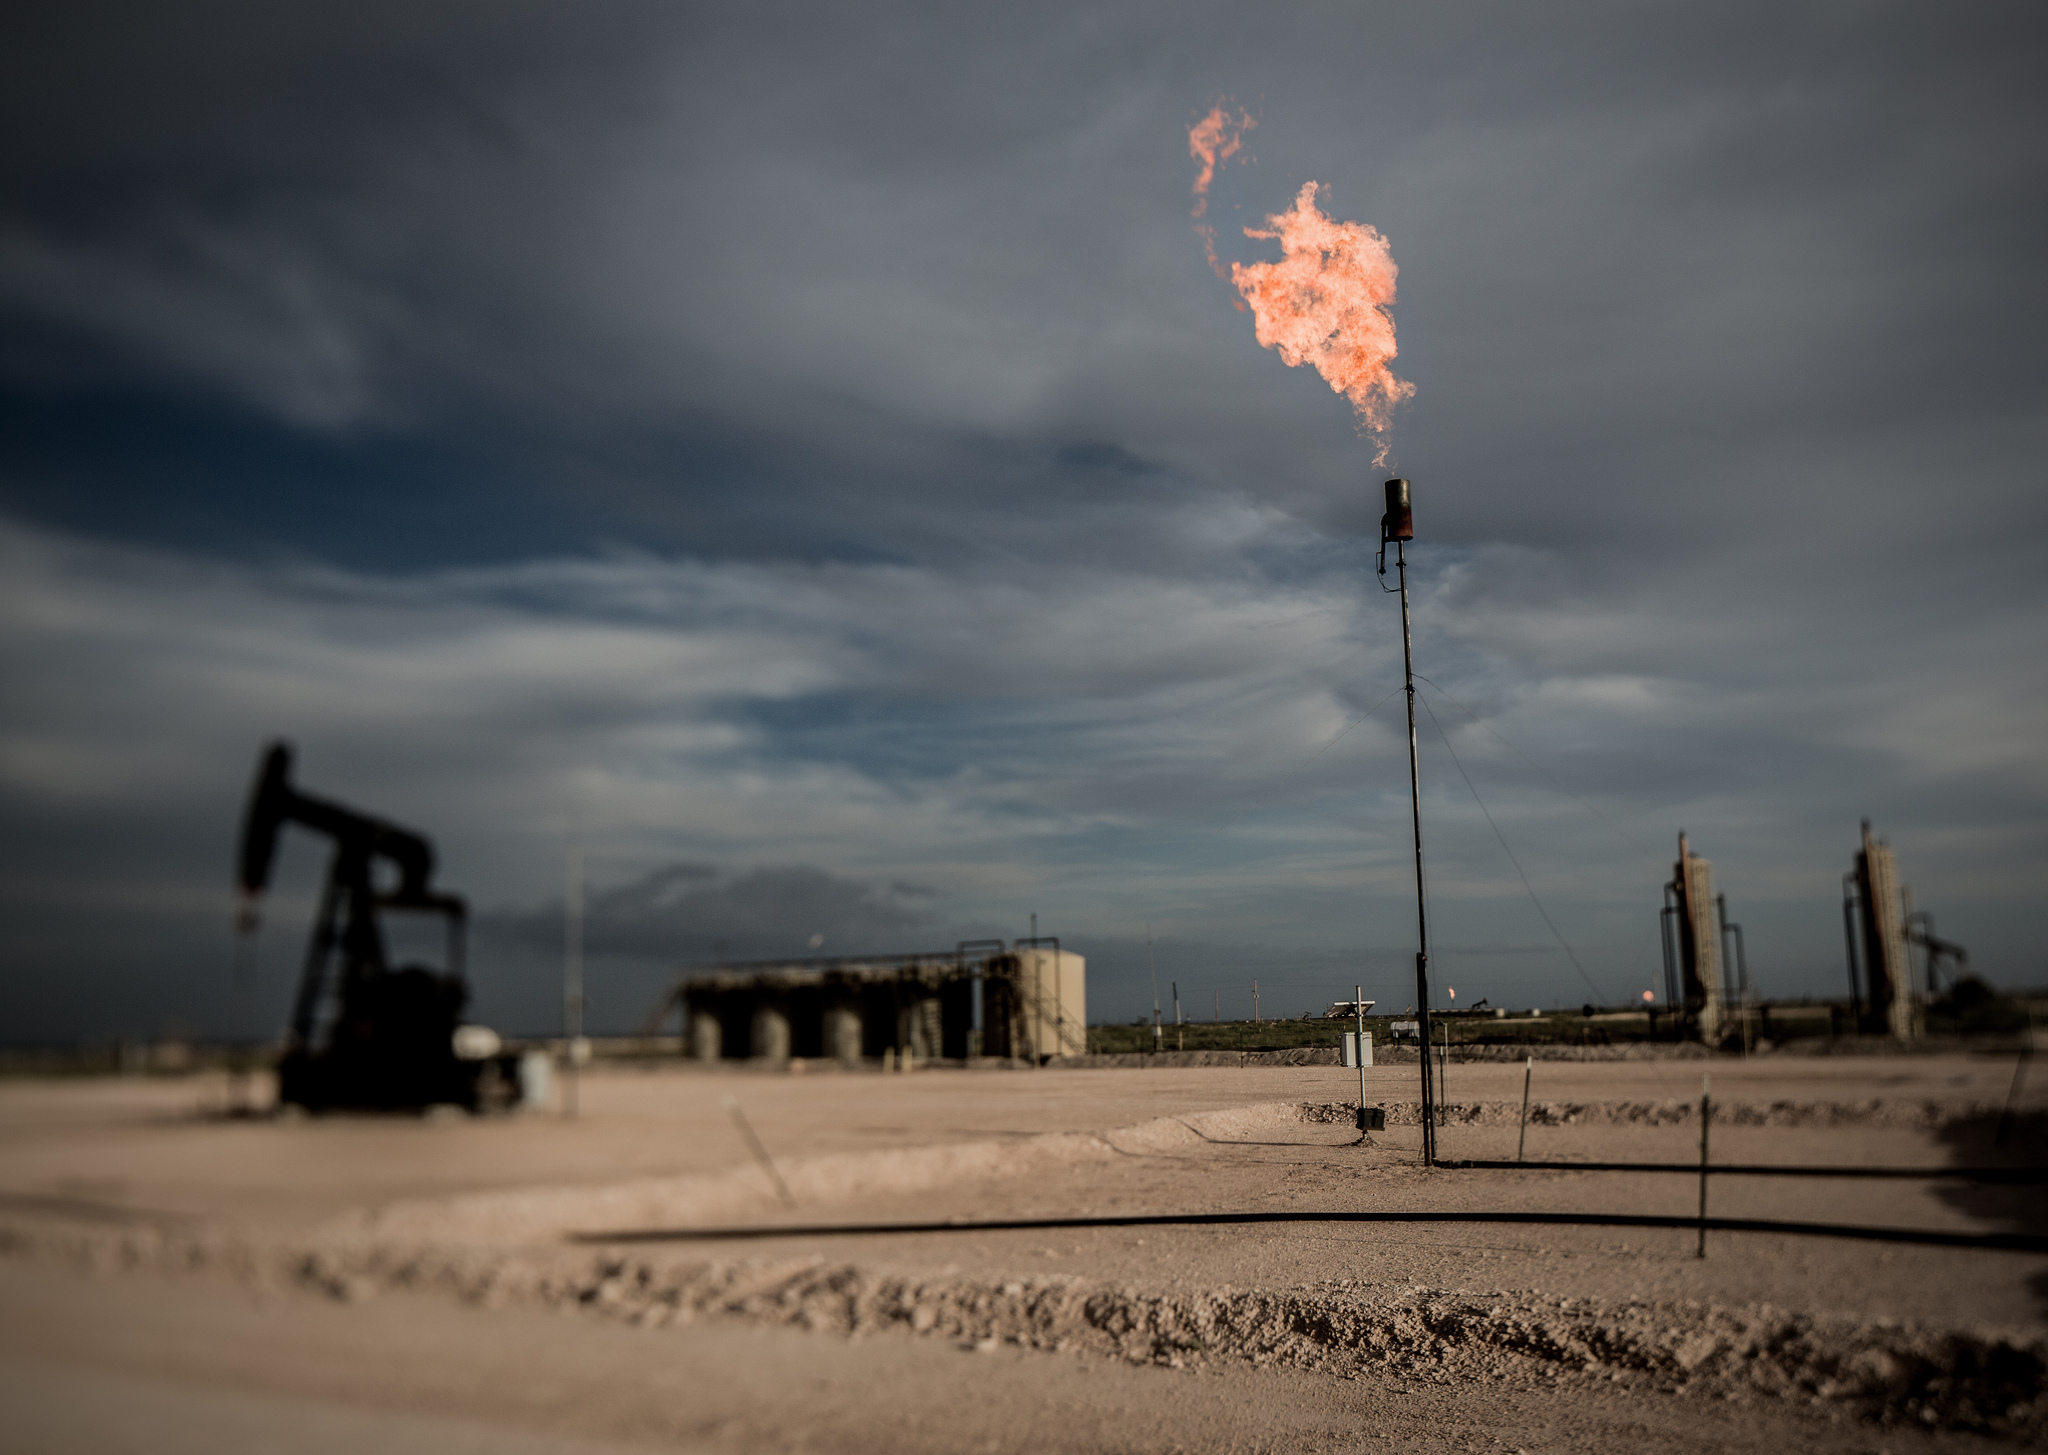 """Flaring natural gas in Eddy County, NM. The Methane Waste Rule stops the waste of publicly-owned natural gas, and protects our environment and public health. This rule is facing a rollback vote in the Senate, which would overturn the rule and prevent any other """"substantially similar"""" rule to be adopted in the future.  Photo by Blake Thornberry,   CC BY-NC-ND 2.0       https://www.flickr.com/photos/91657289@N02/9647487520/in/photostream/"""